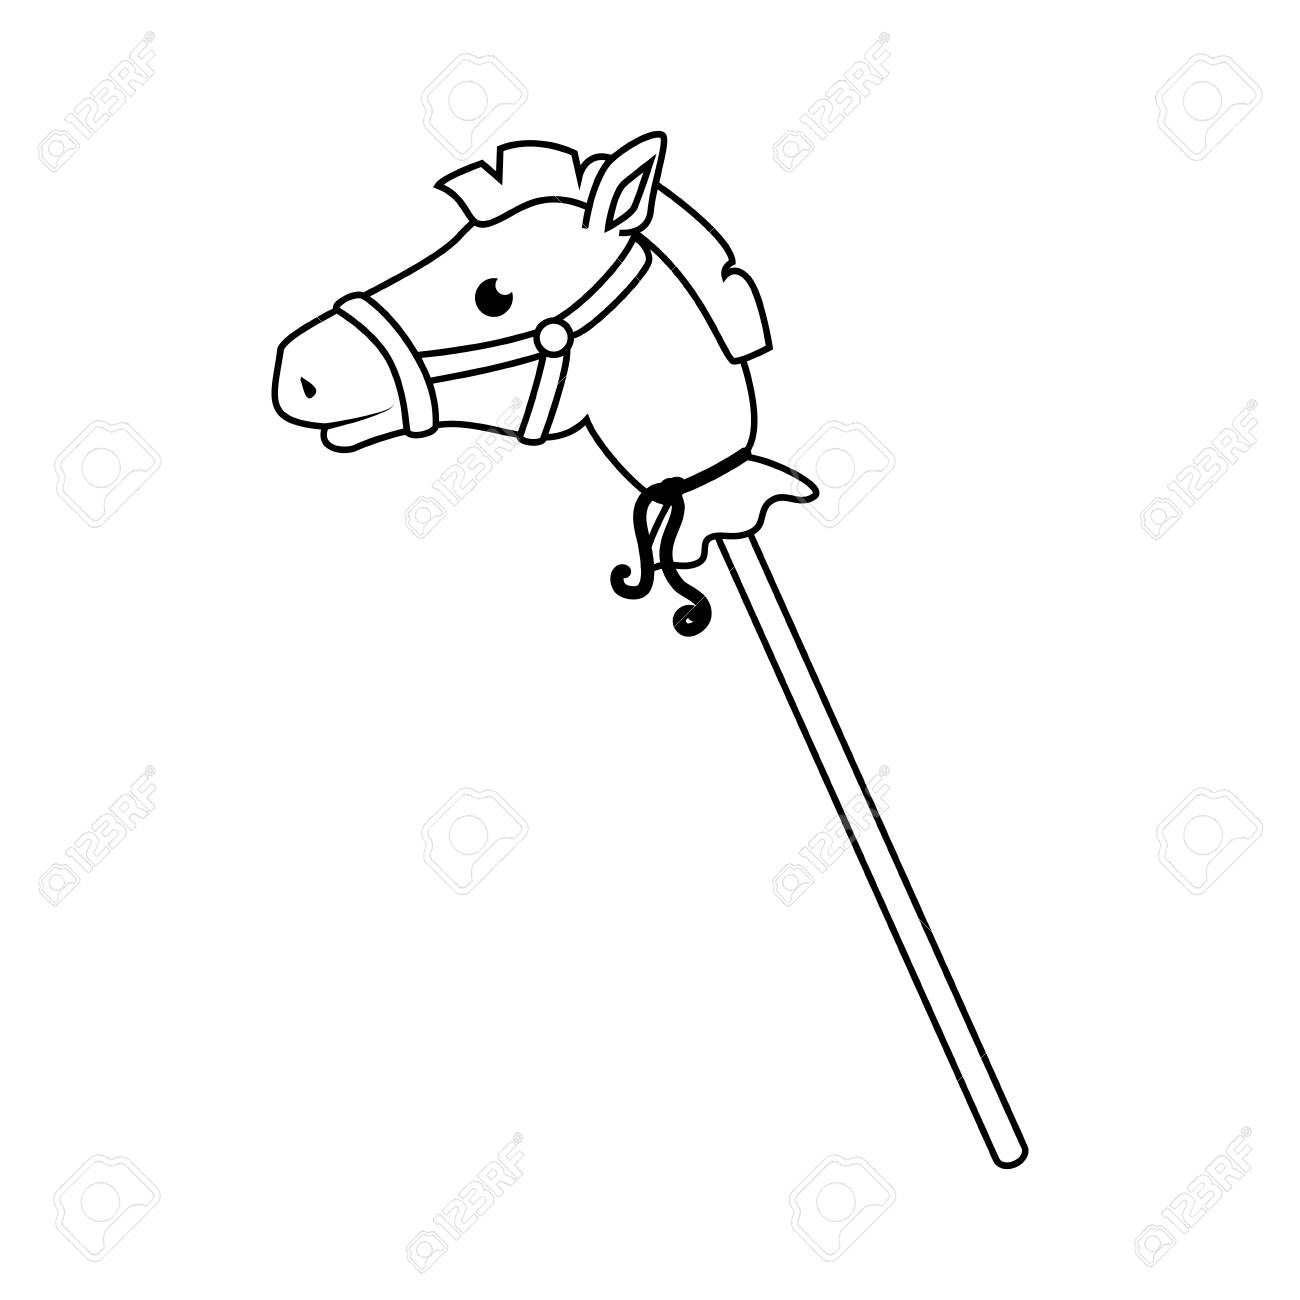 Horse Kids Toy Isolated Icon Vector Illustration Design Stock Photo Picture And Royalty Free Image Image 71268960